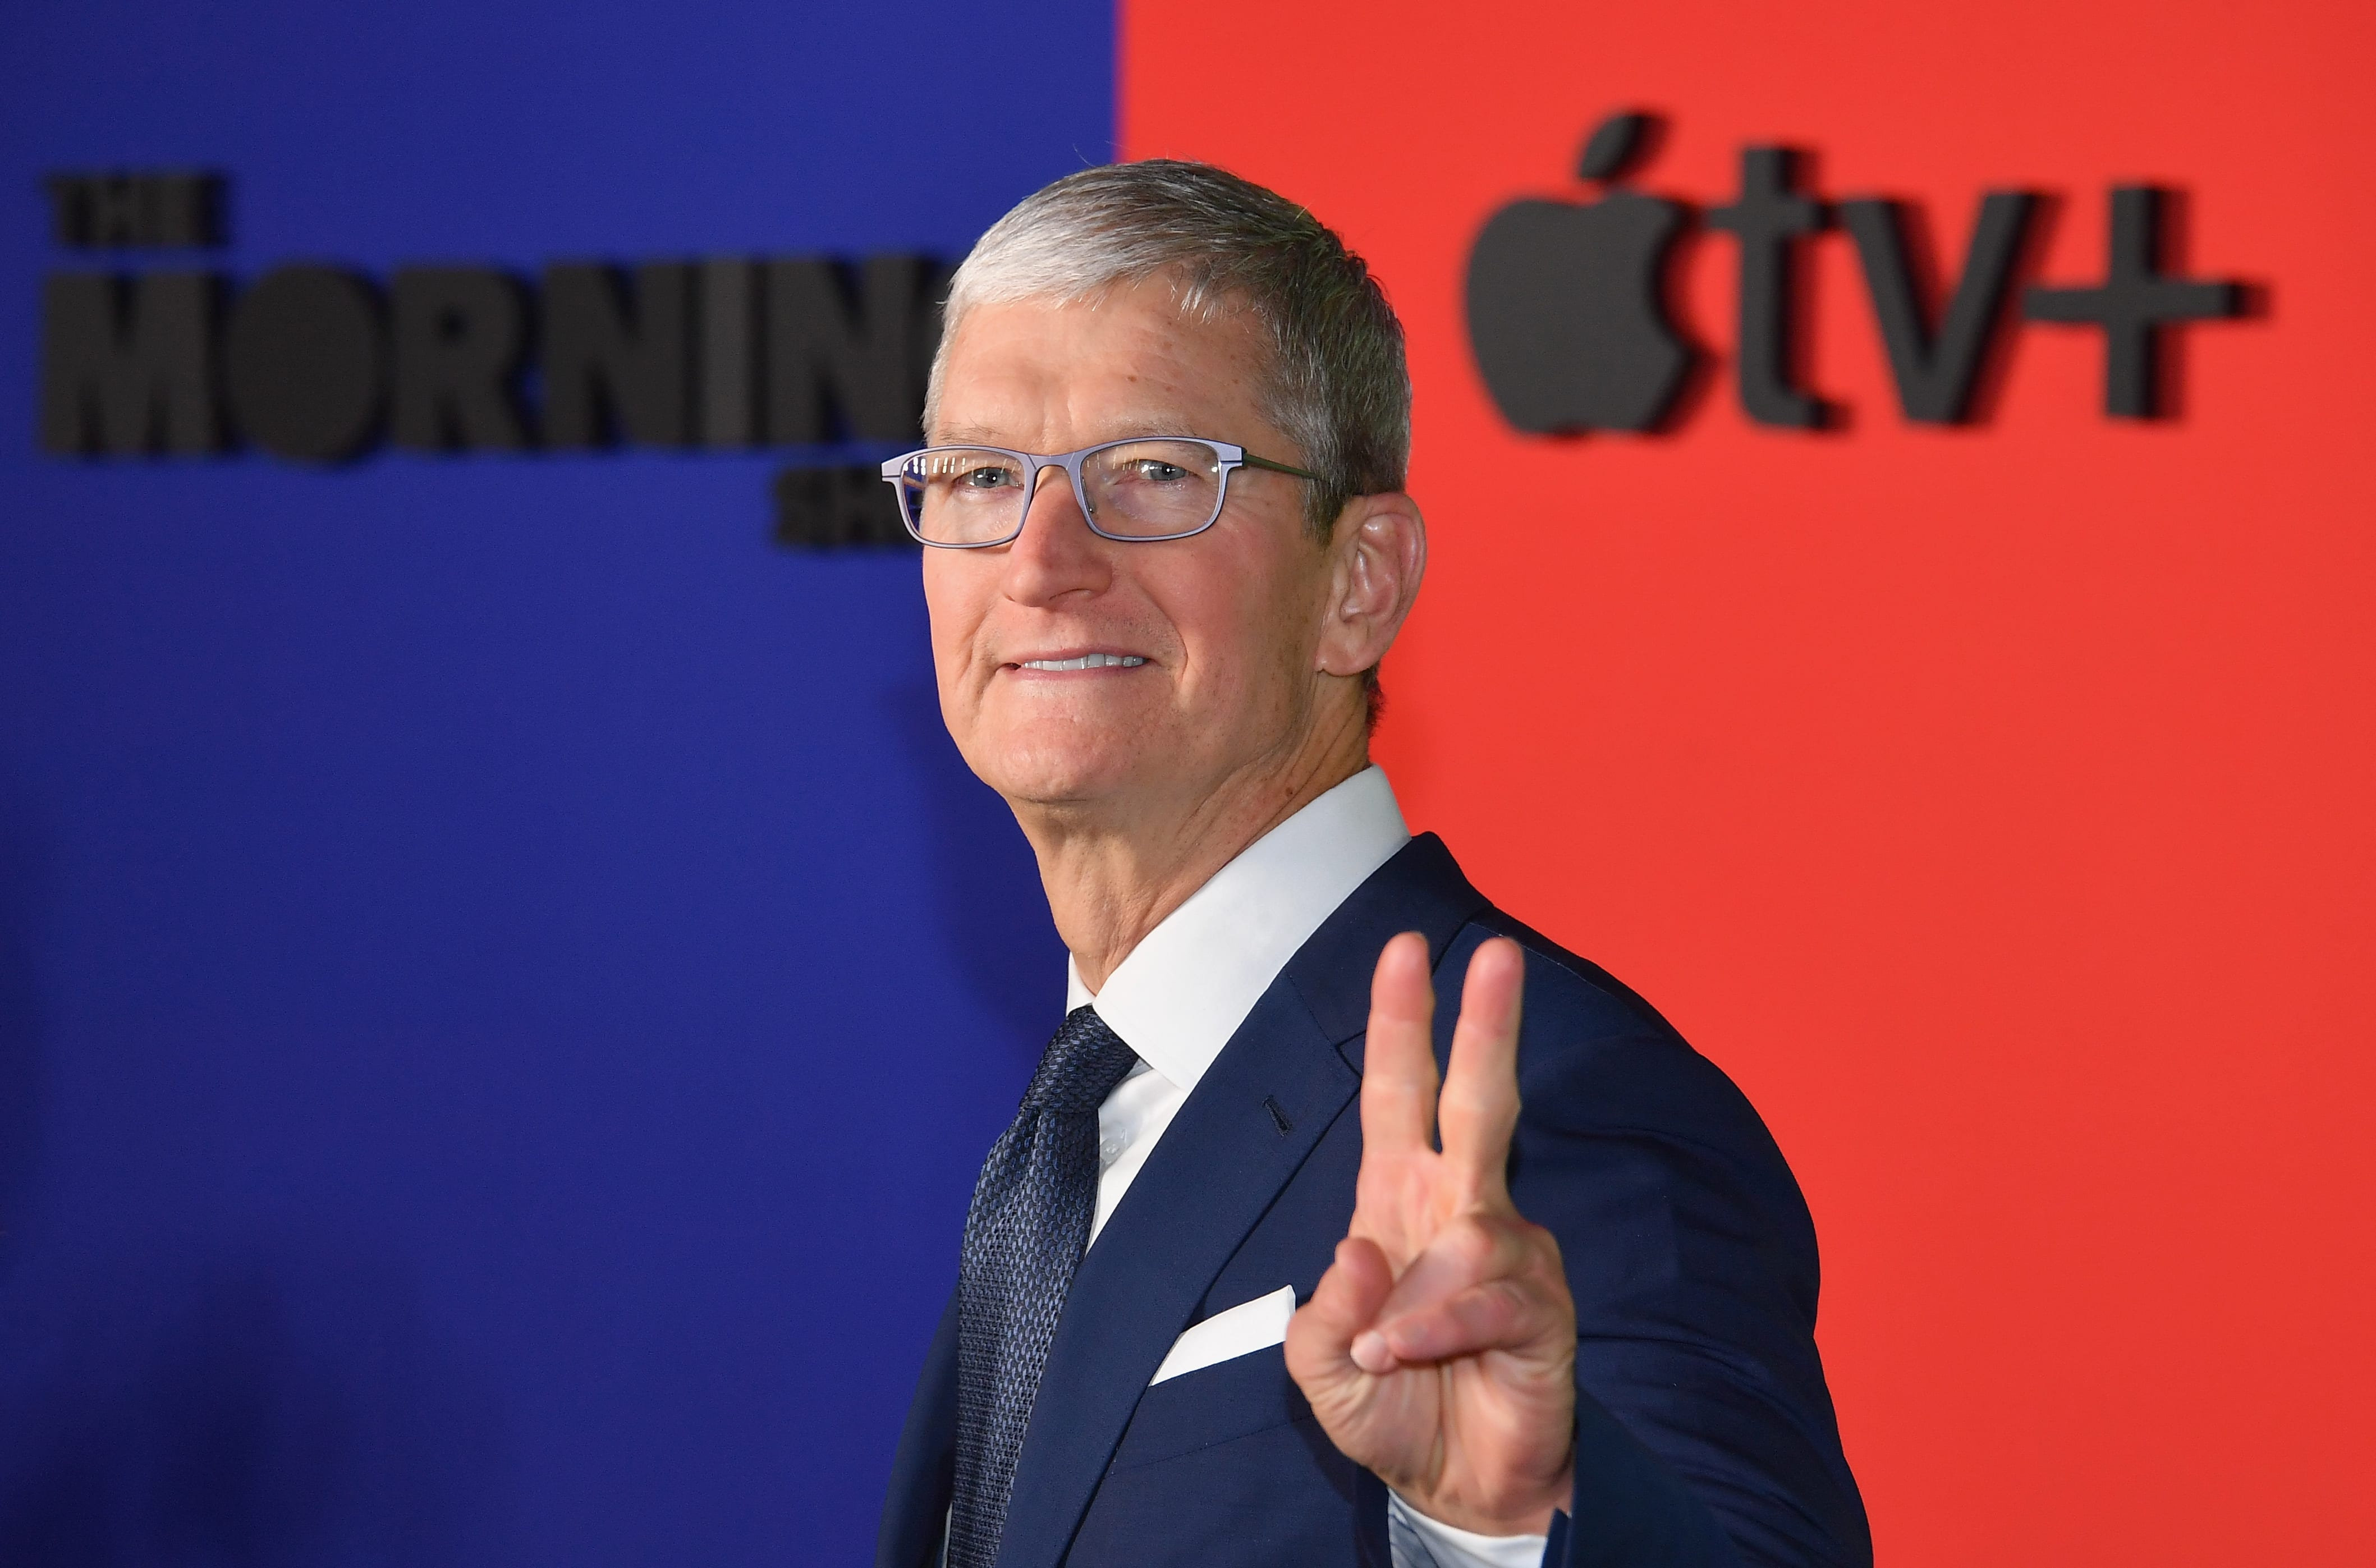 Apple's Tim Cook Bags $280 Million Bonus After Becoming a Rare Billionaire CEO